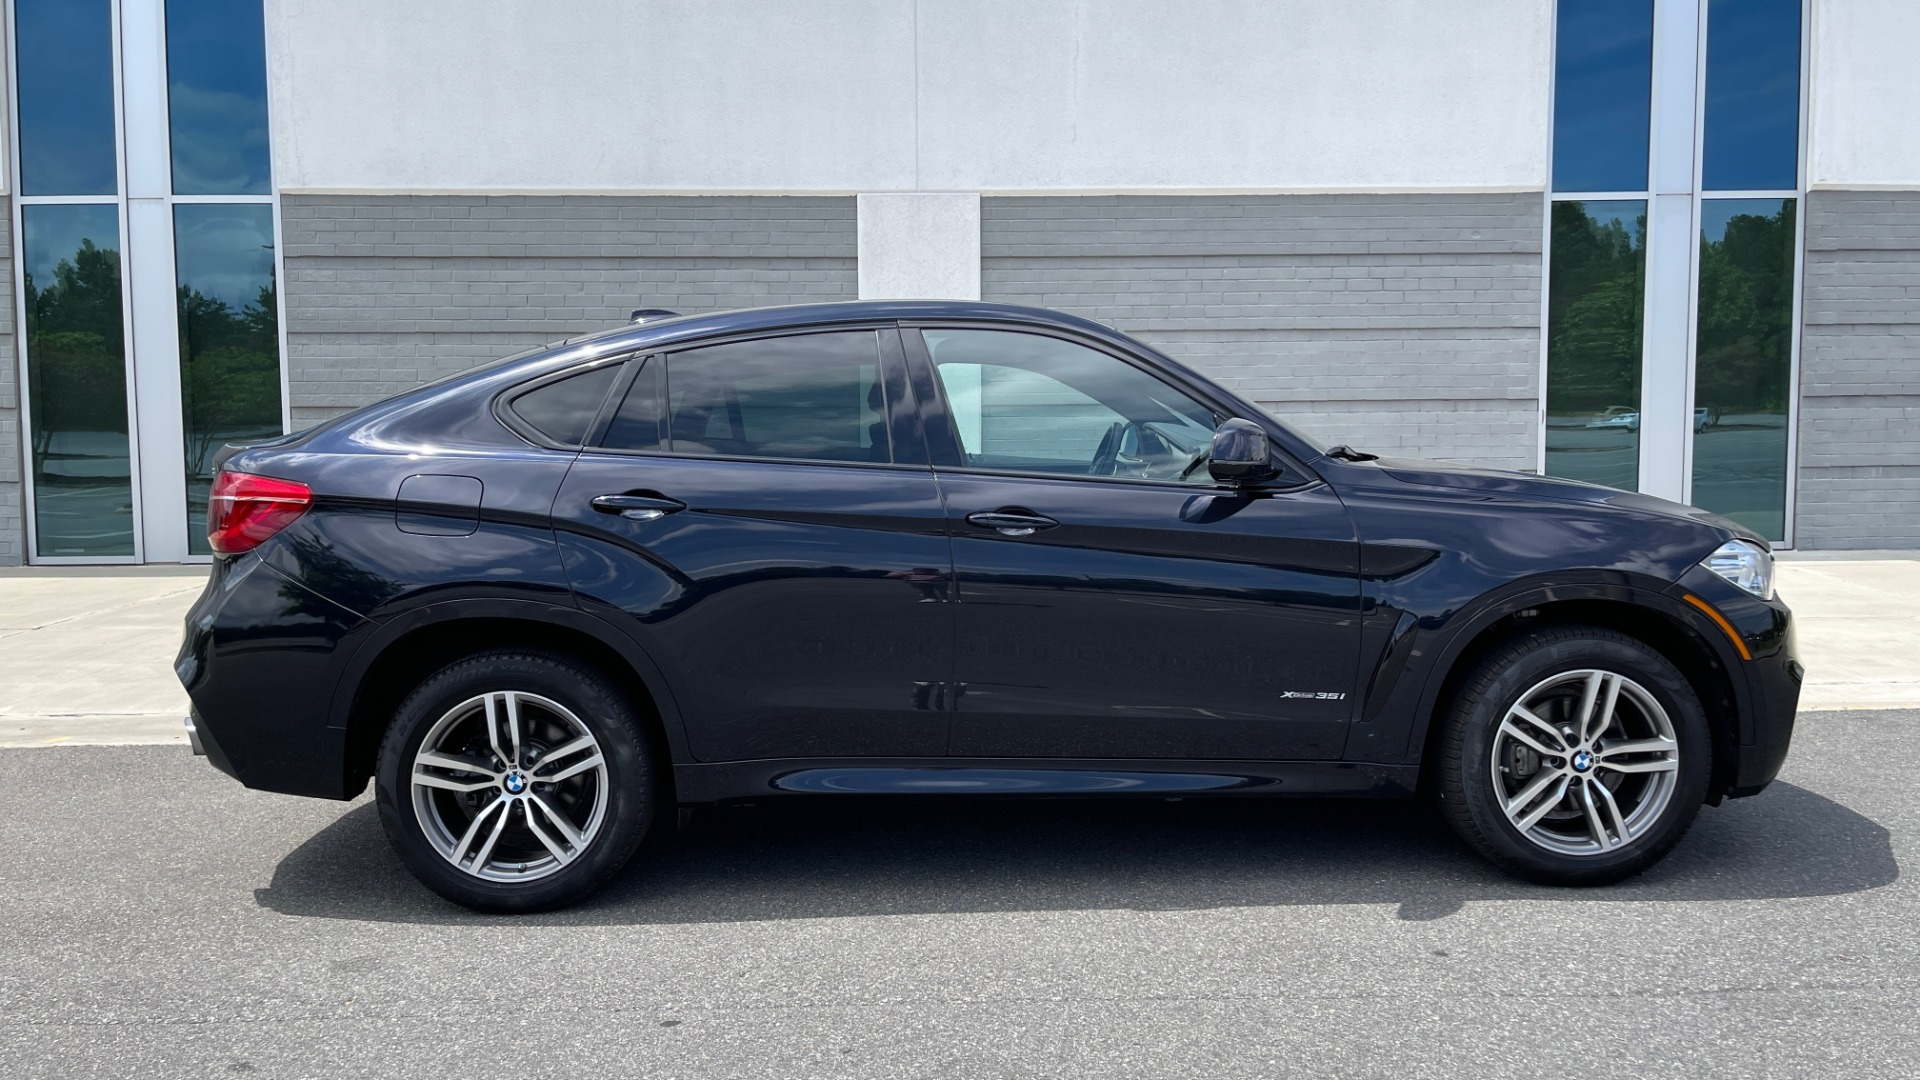 Used 2018 BMW X6 XDRIVE35I M-SPORT / DRVR ASST / PRK ASST / H/K SND / APPLE / WIRELESS CHARG for sale $51,995 at Formula Imports in Charlotte NC 28227 6